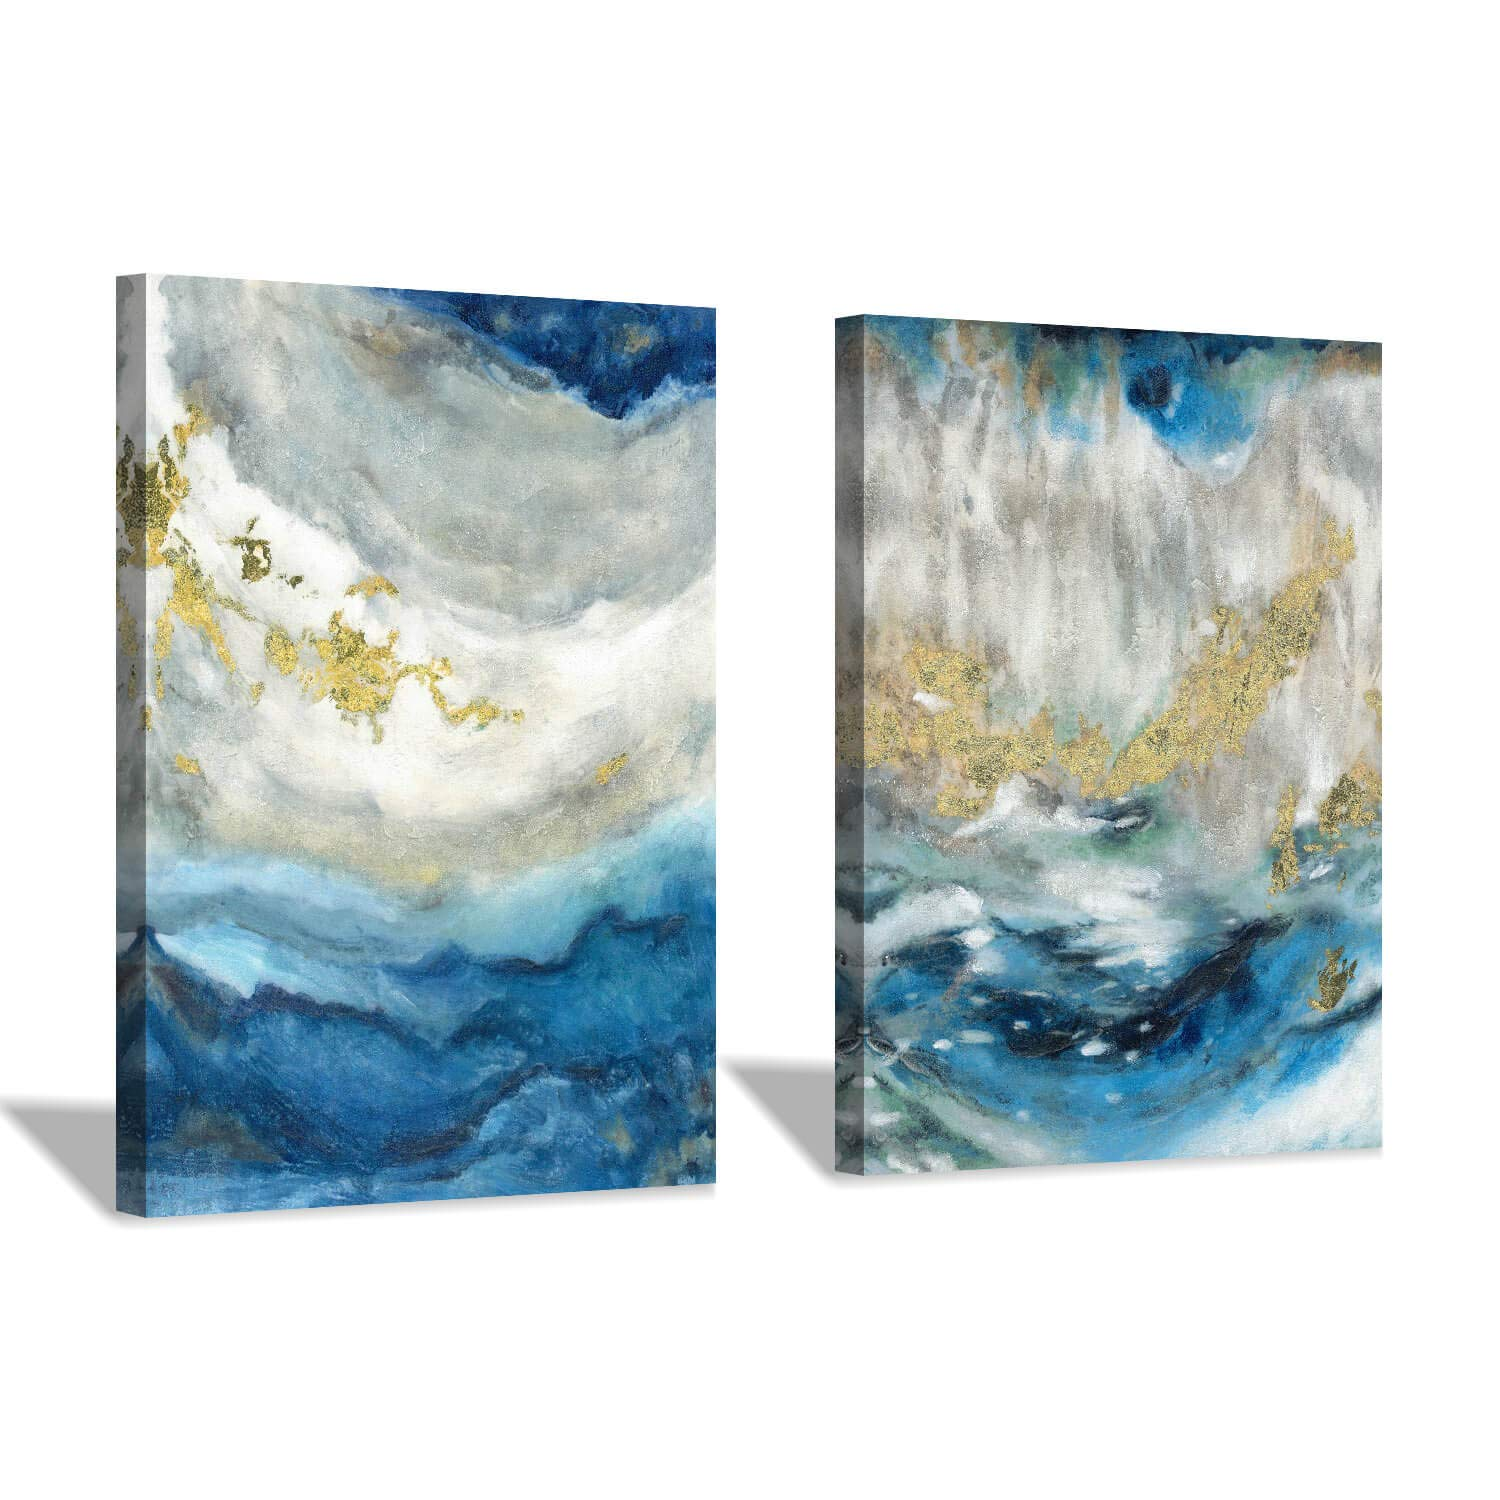 Blue Abstract Canvas Wall Art: Hand-Painted White & Blue Painting Picture with Gold Foil Artwork for Living Room (16'' x 12'' x 2 Panels)